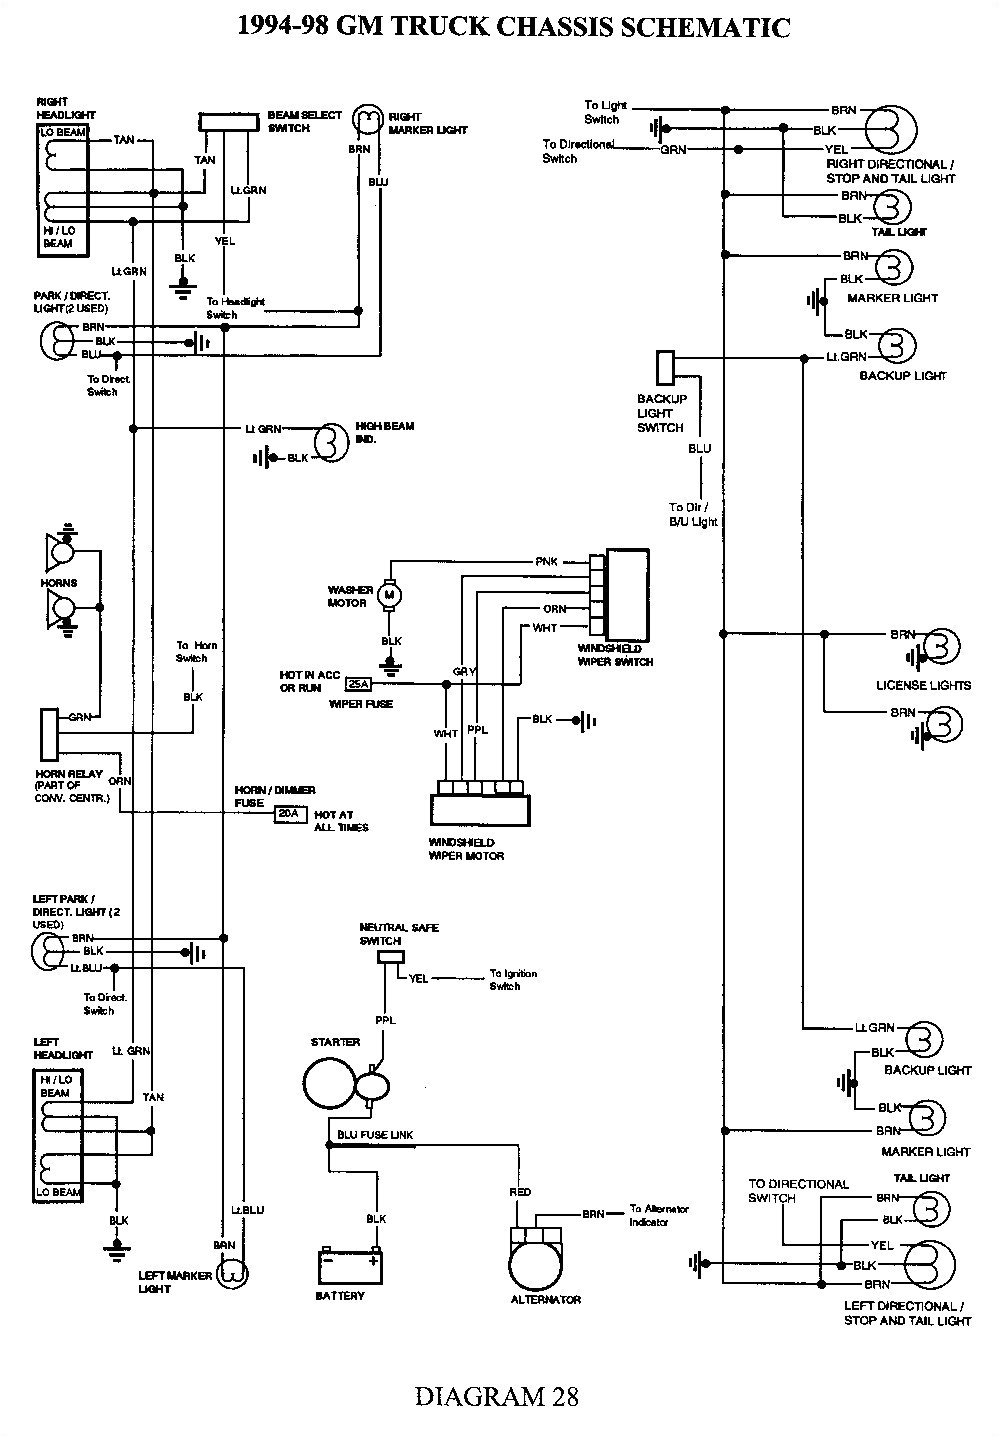 fise wiring diagram 78 chevy truck wiring diagram list 1978 chevy truck tail light wiring harness